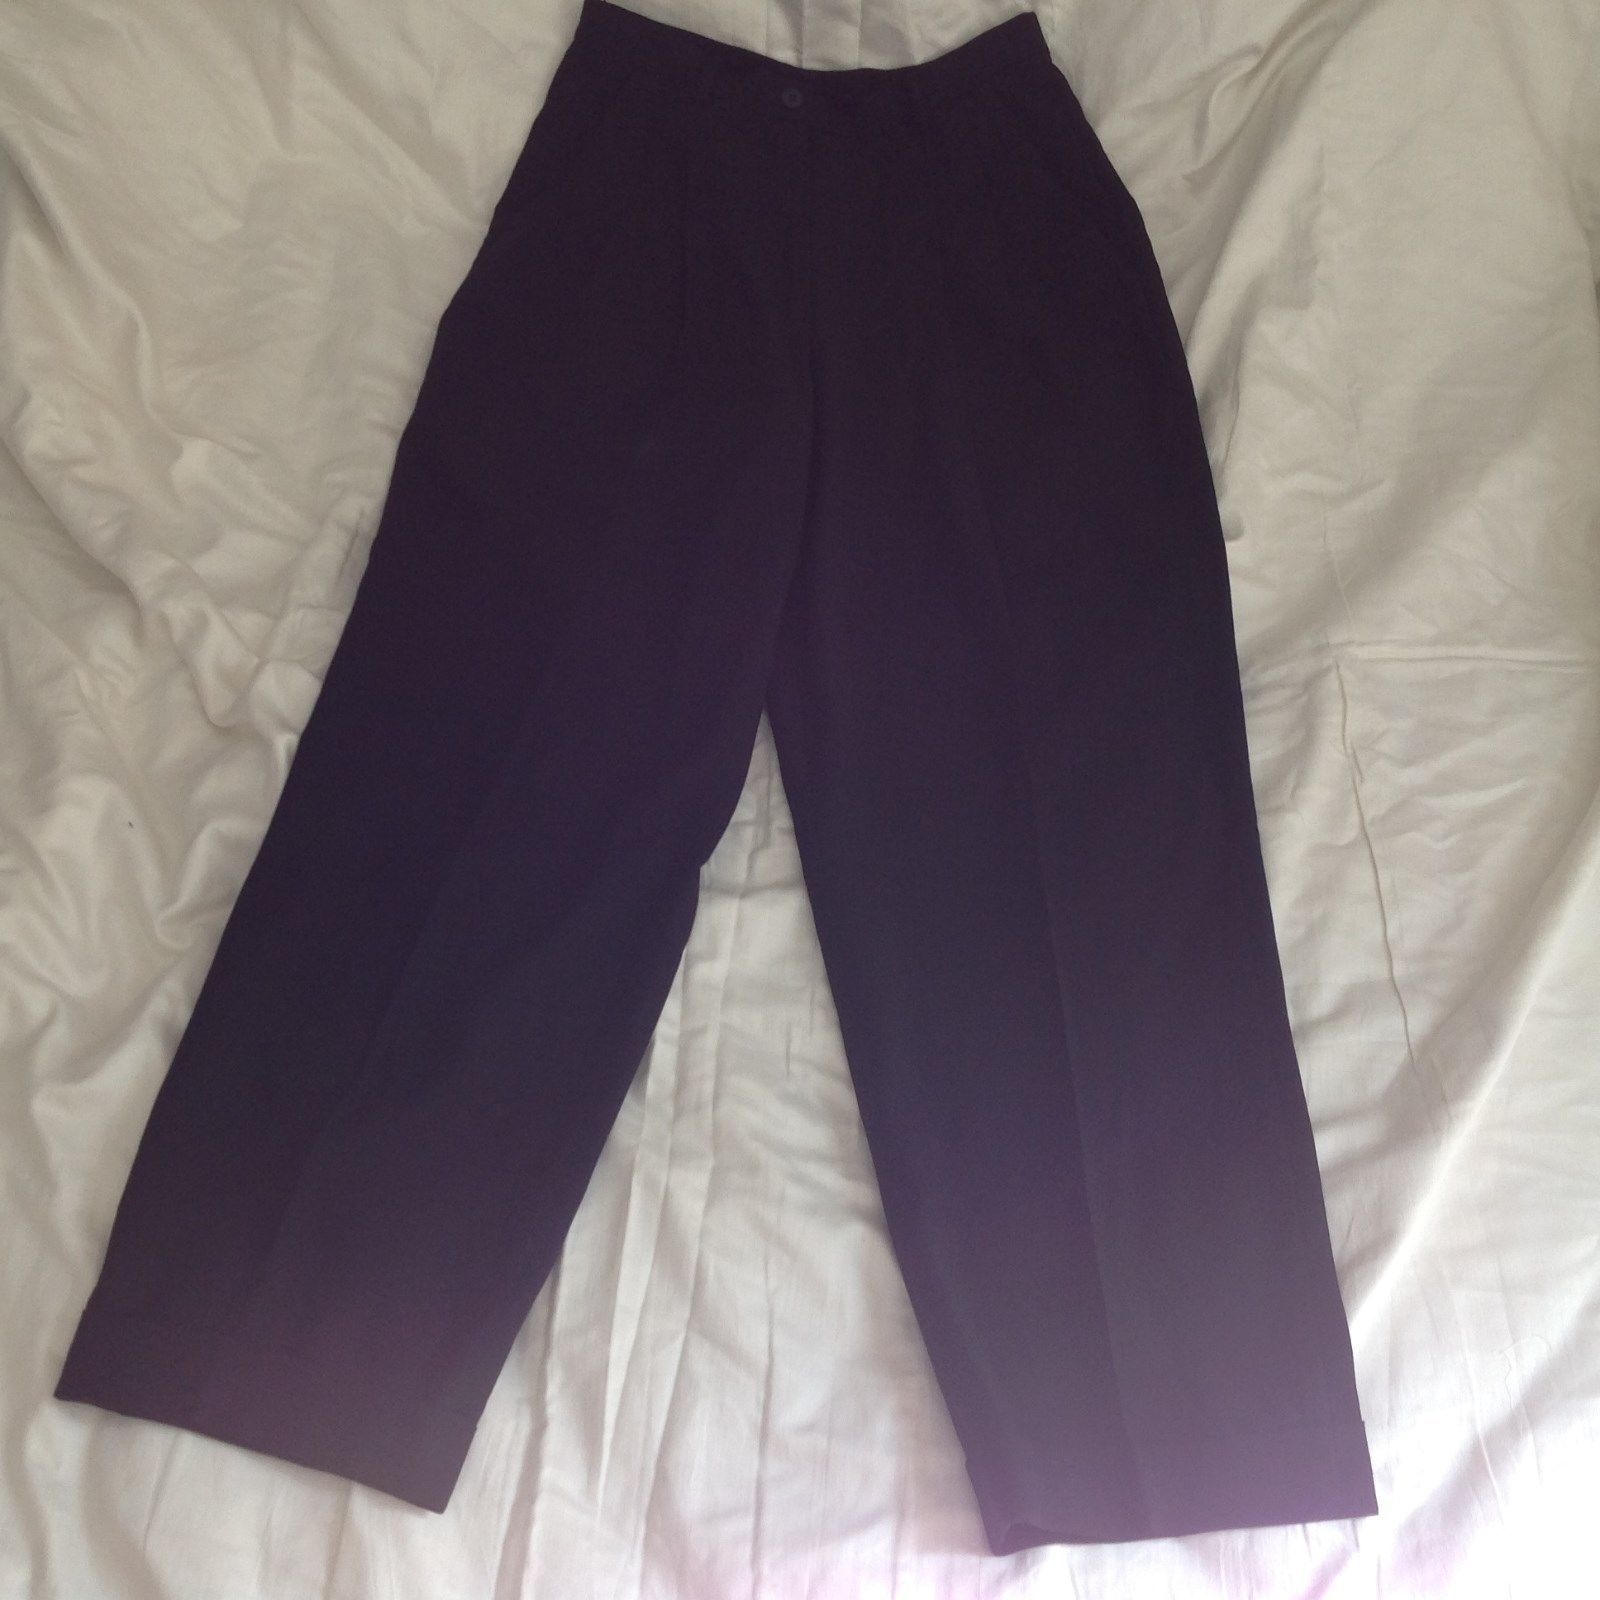 Size 6 DKNY Black Dress Pants 100 Percent Wool Cuffed Bottom